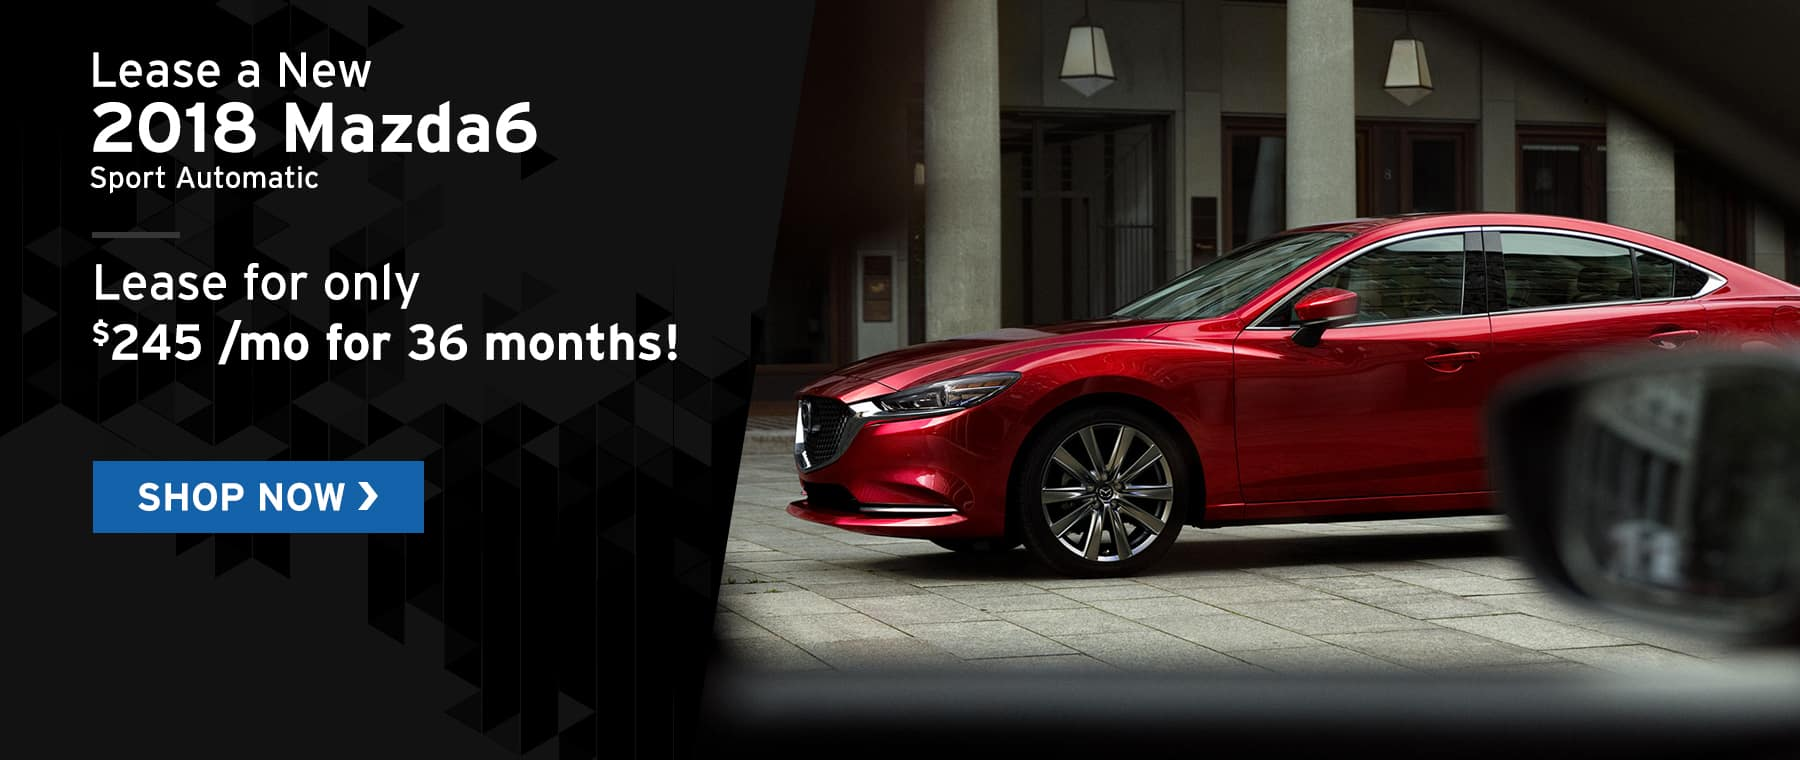 Mazda6 deals at Hubler Mazda